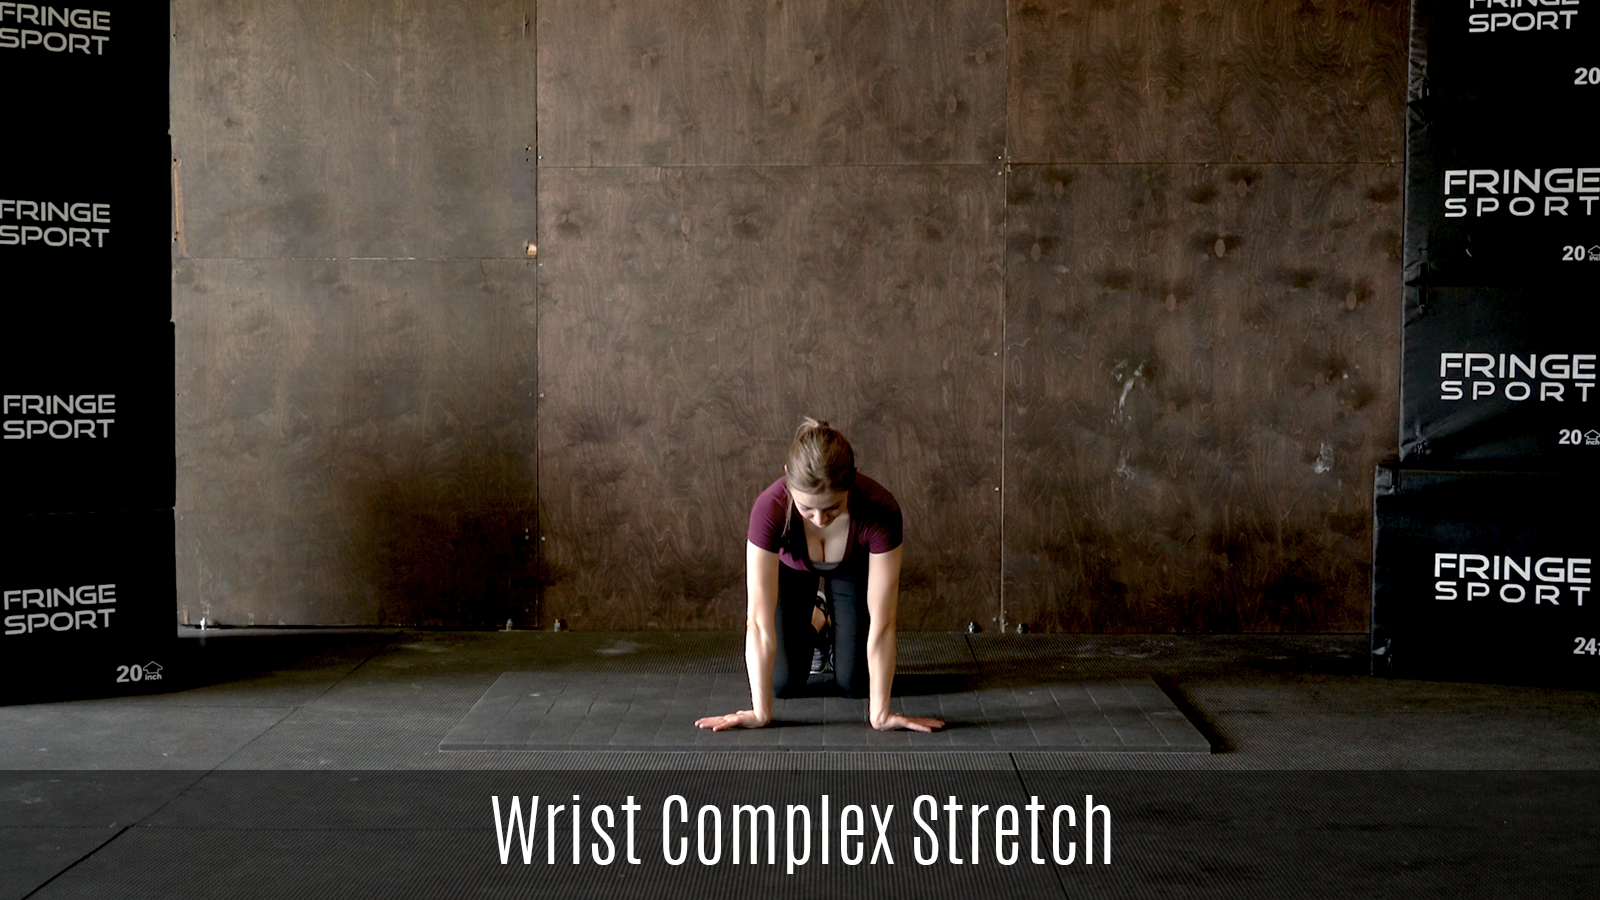 wrist complex stretch demo